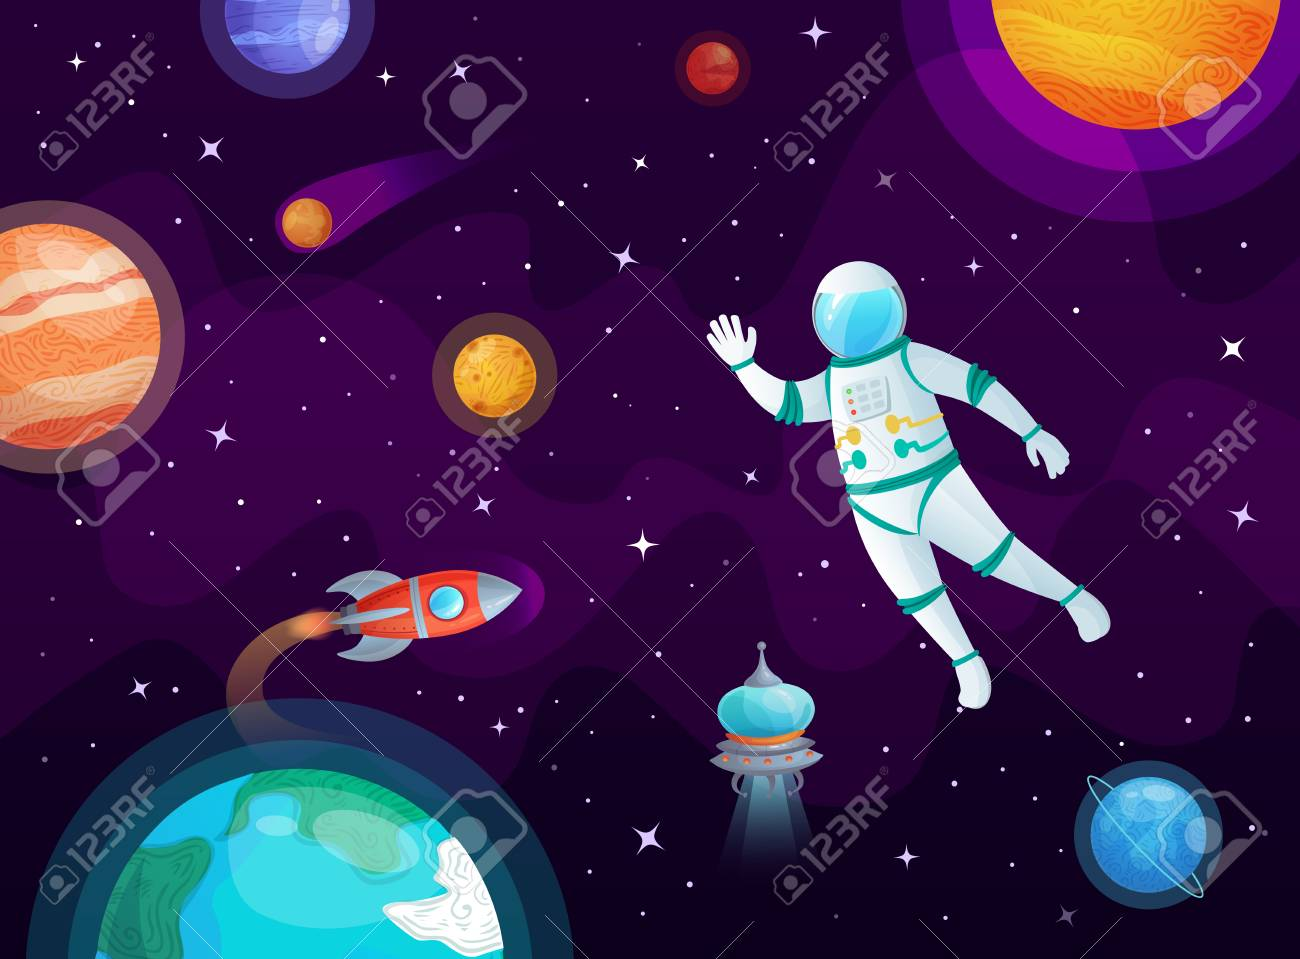 Cosmonaut in space. Astronaut spacecraft rocket in open space, universe planets and planetary. Solar system, globe and astronauts ship. Stars rockets travel cartoon vector background illustration - 118727449